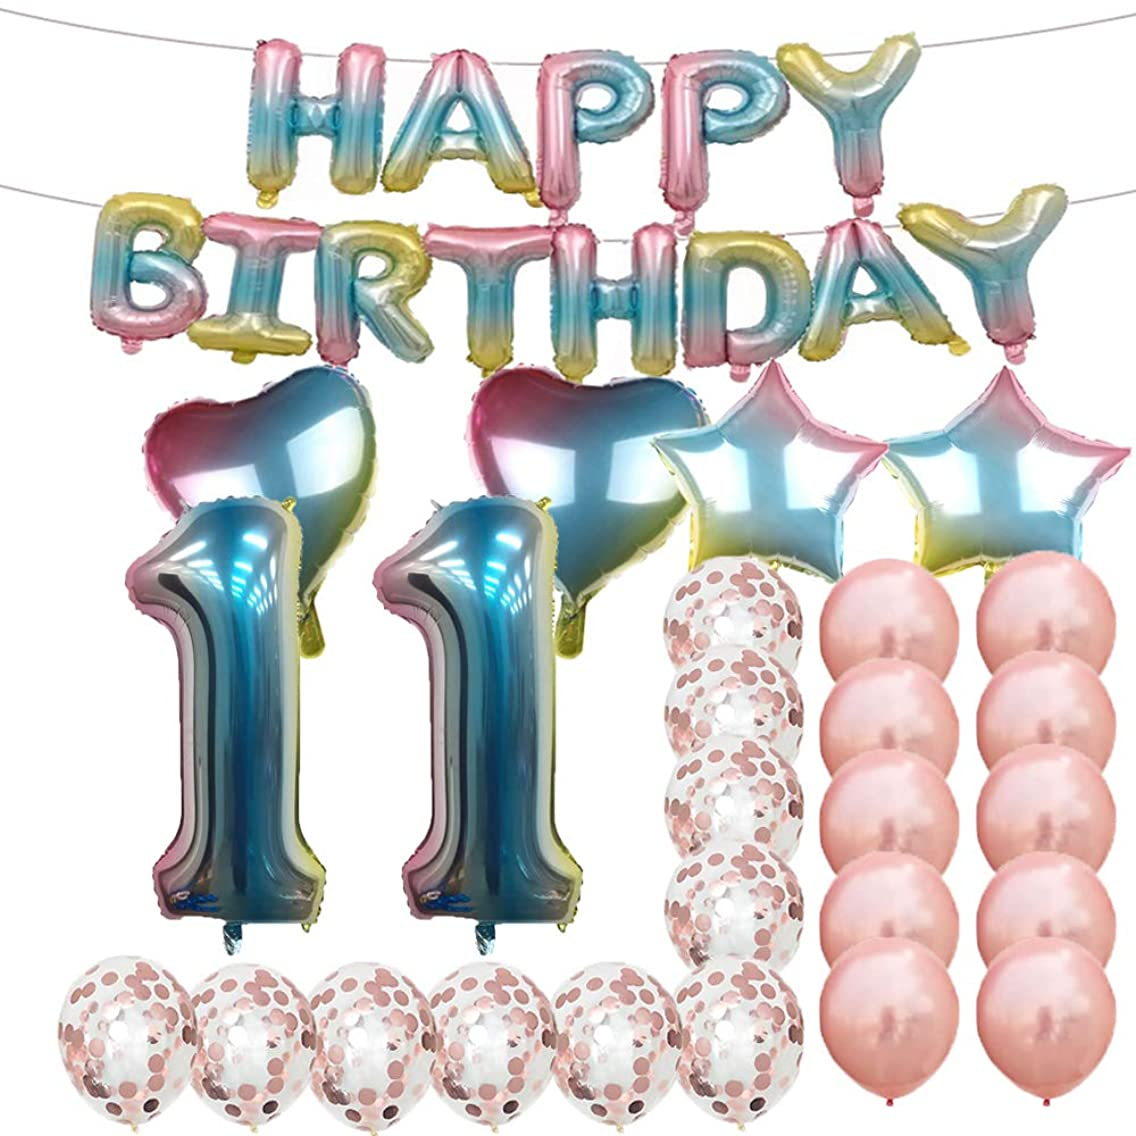 Sweet 11th Birthday Decorations Party Supplies,Rainbow Number 11 Balloons,11th Foil Mylar Balloons Rose Gold Latex Balloon Decoration,Great 11th Birthday Gifts for Girls,Women,Men,Photo Props